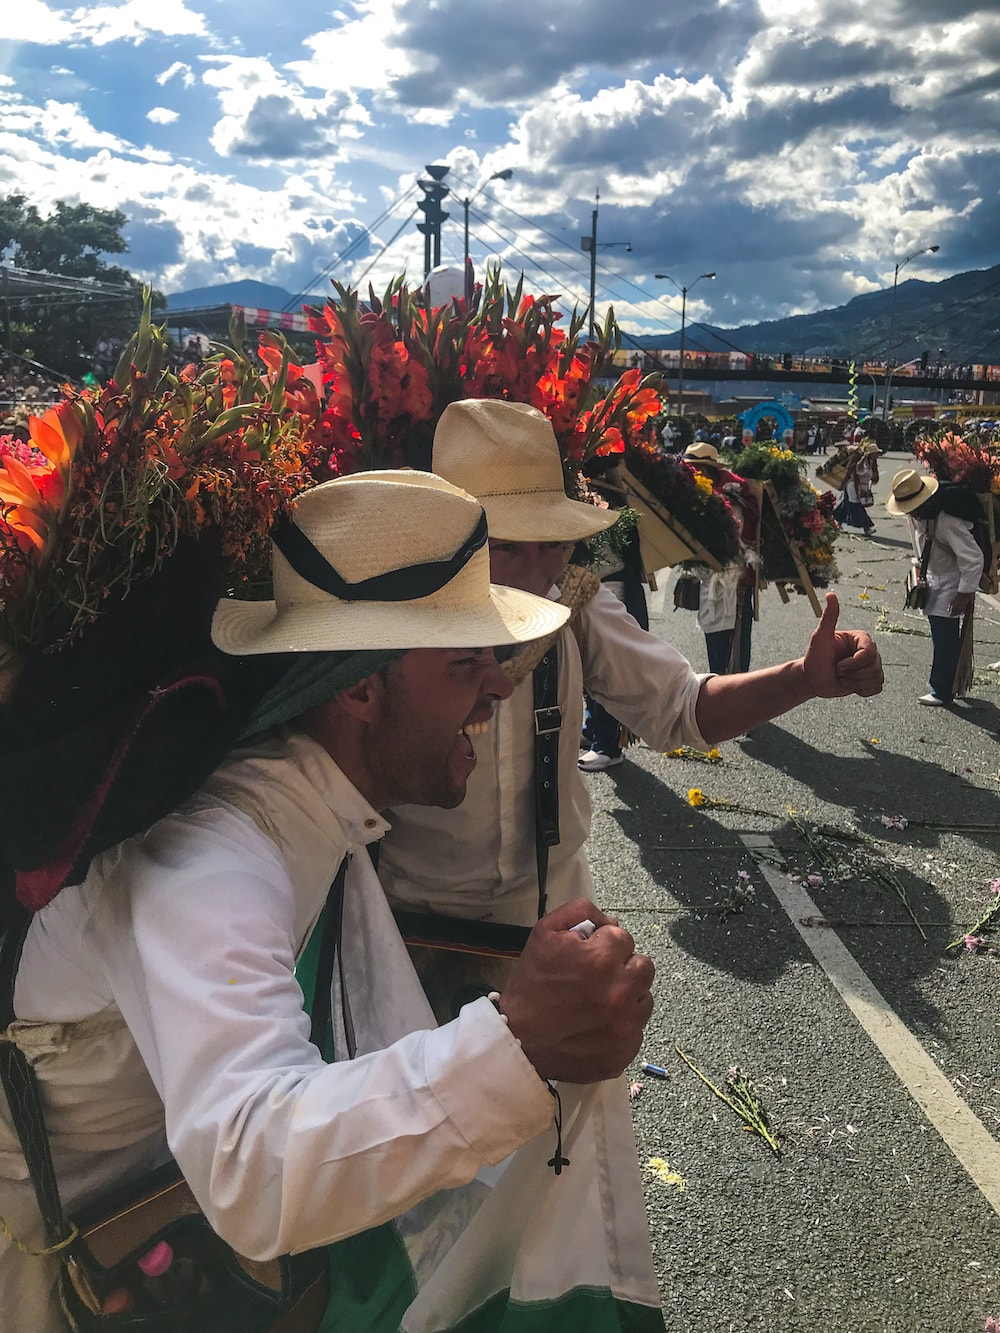 spirited silleteros at the flower festival parade in Medellin